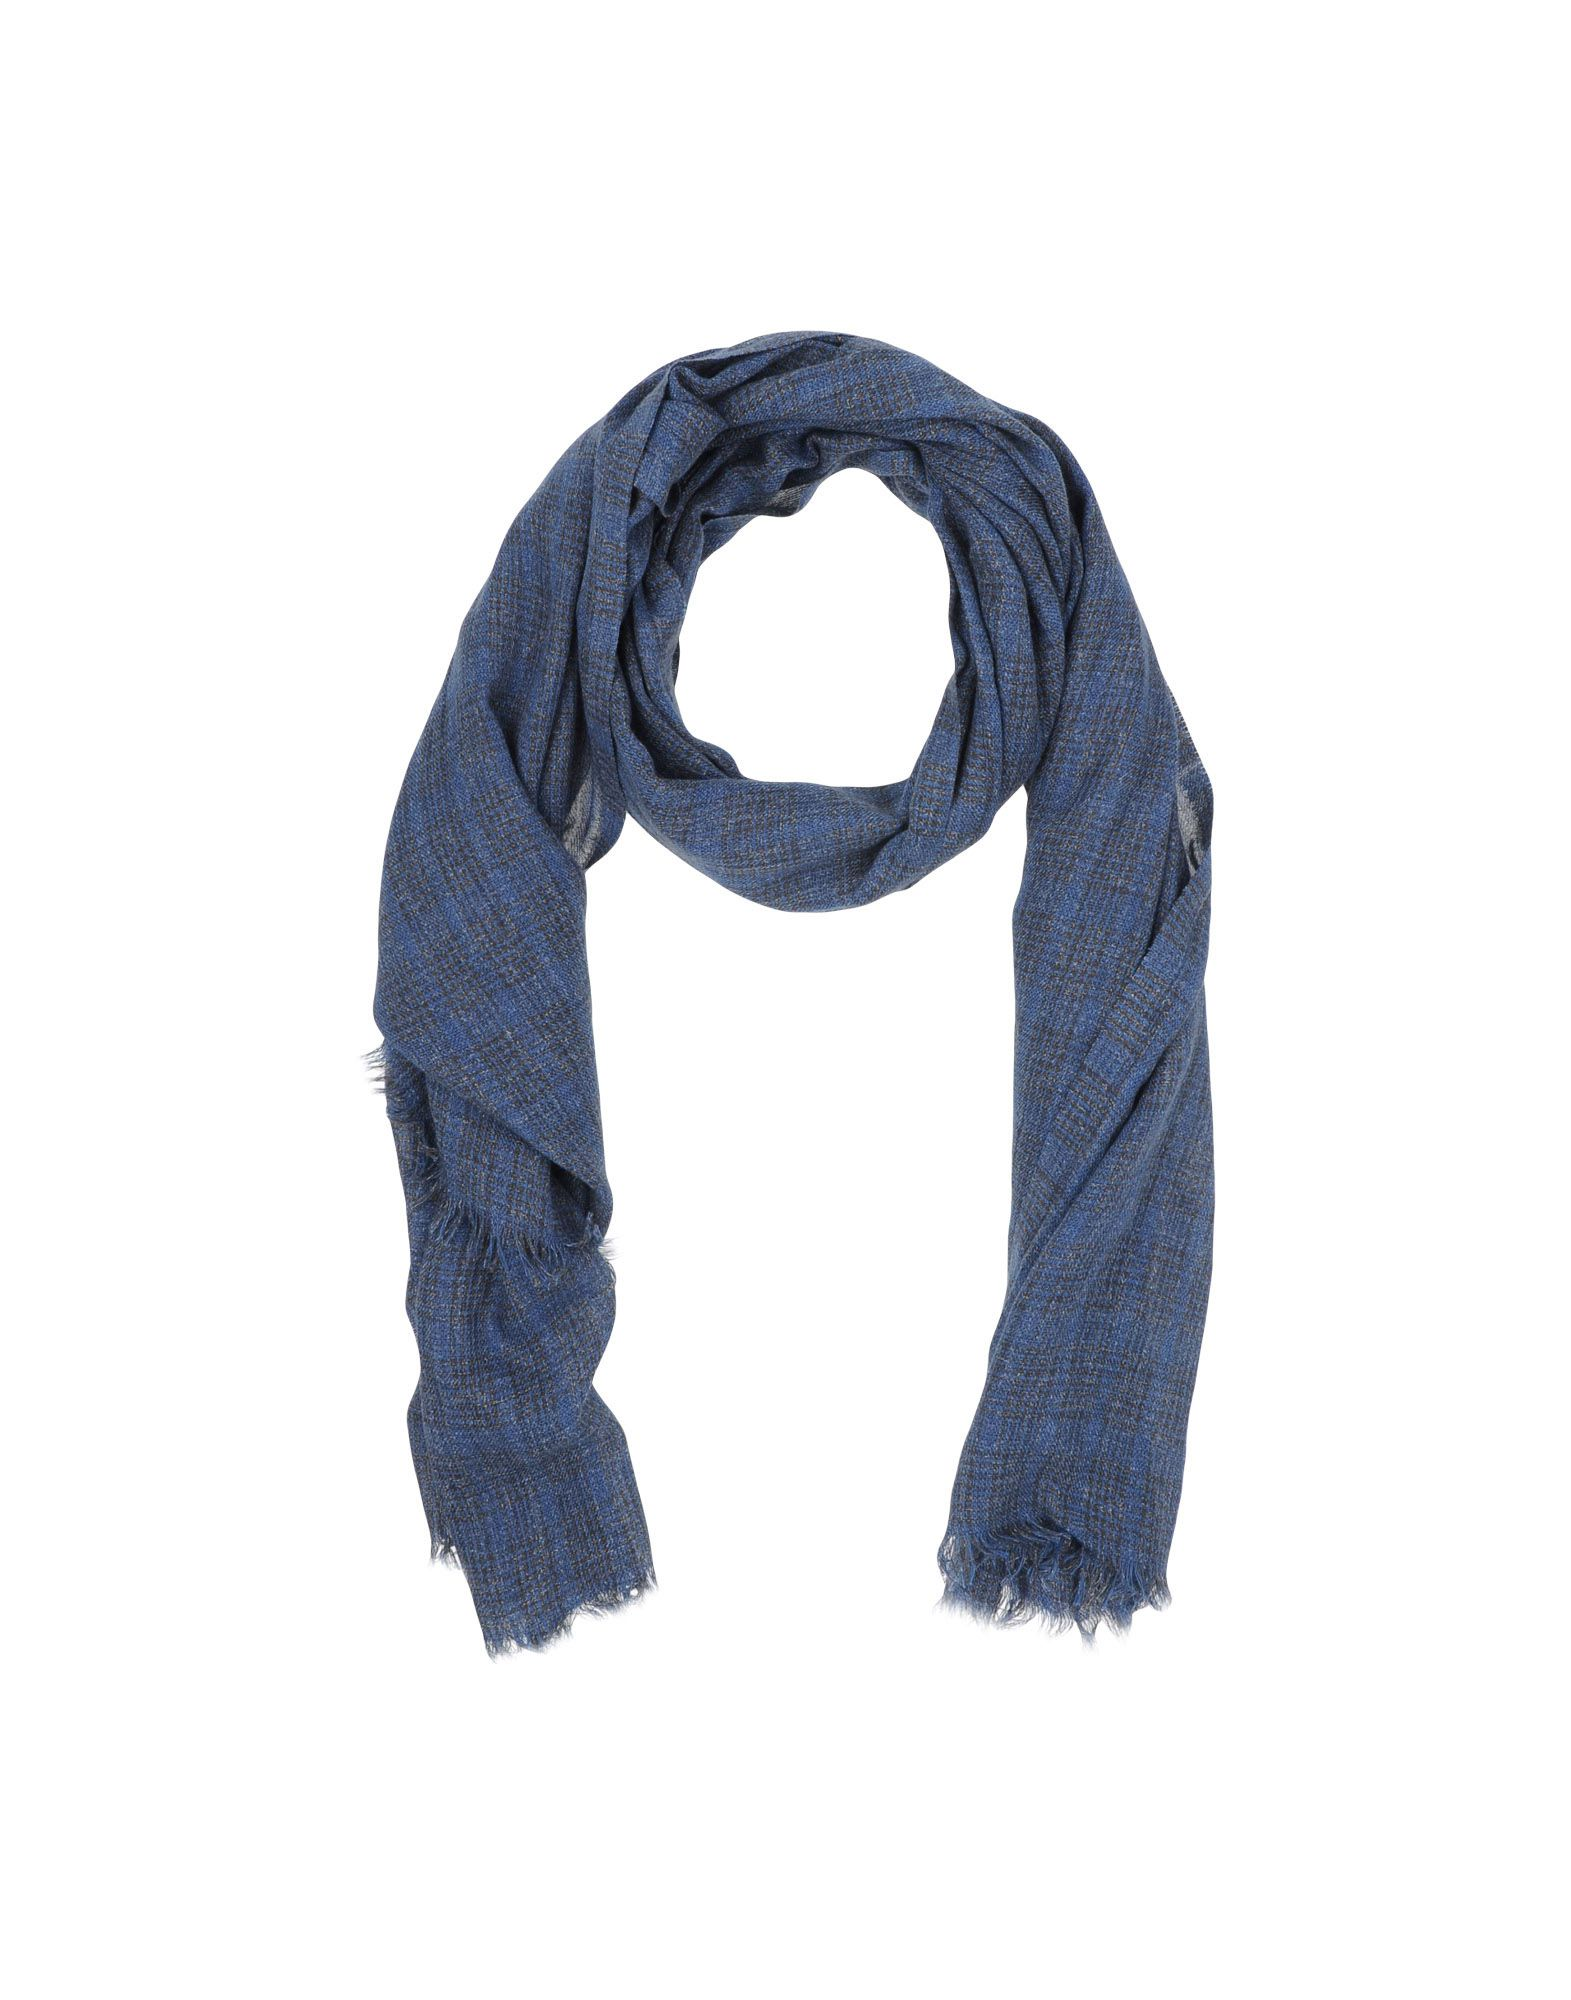 arte male arte oblong scarves